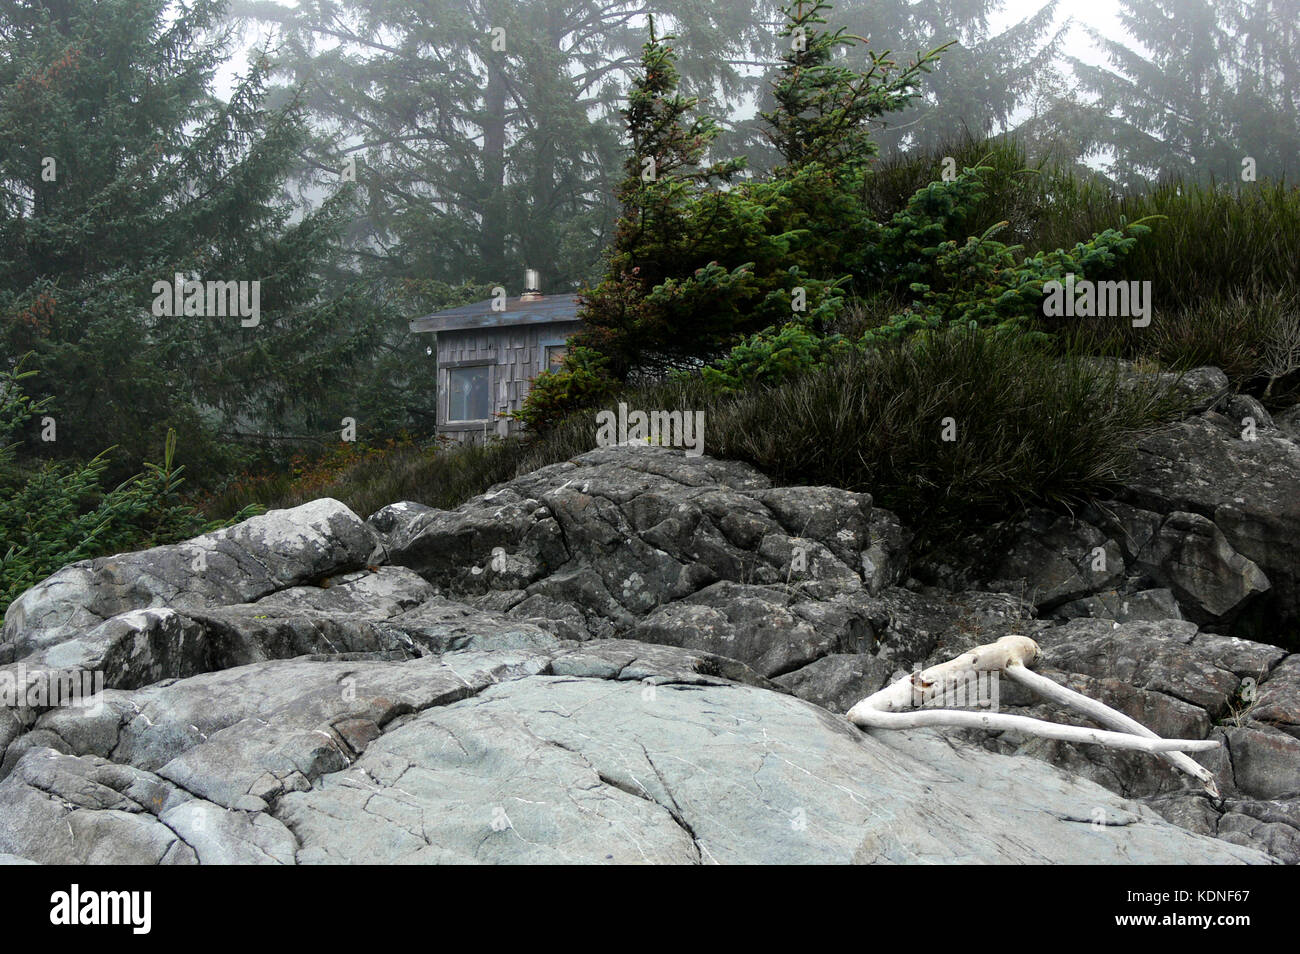 Cabin in the Mist - Sooke, BC, Canada - Stock Image